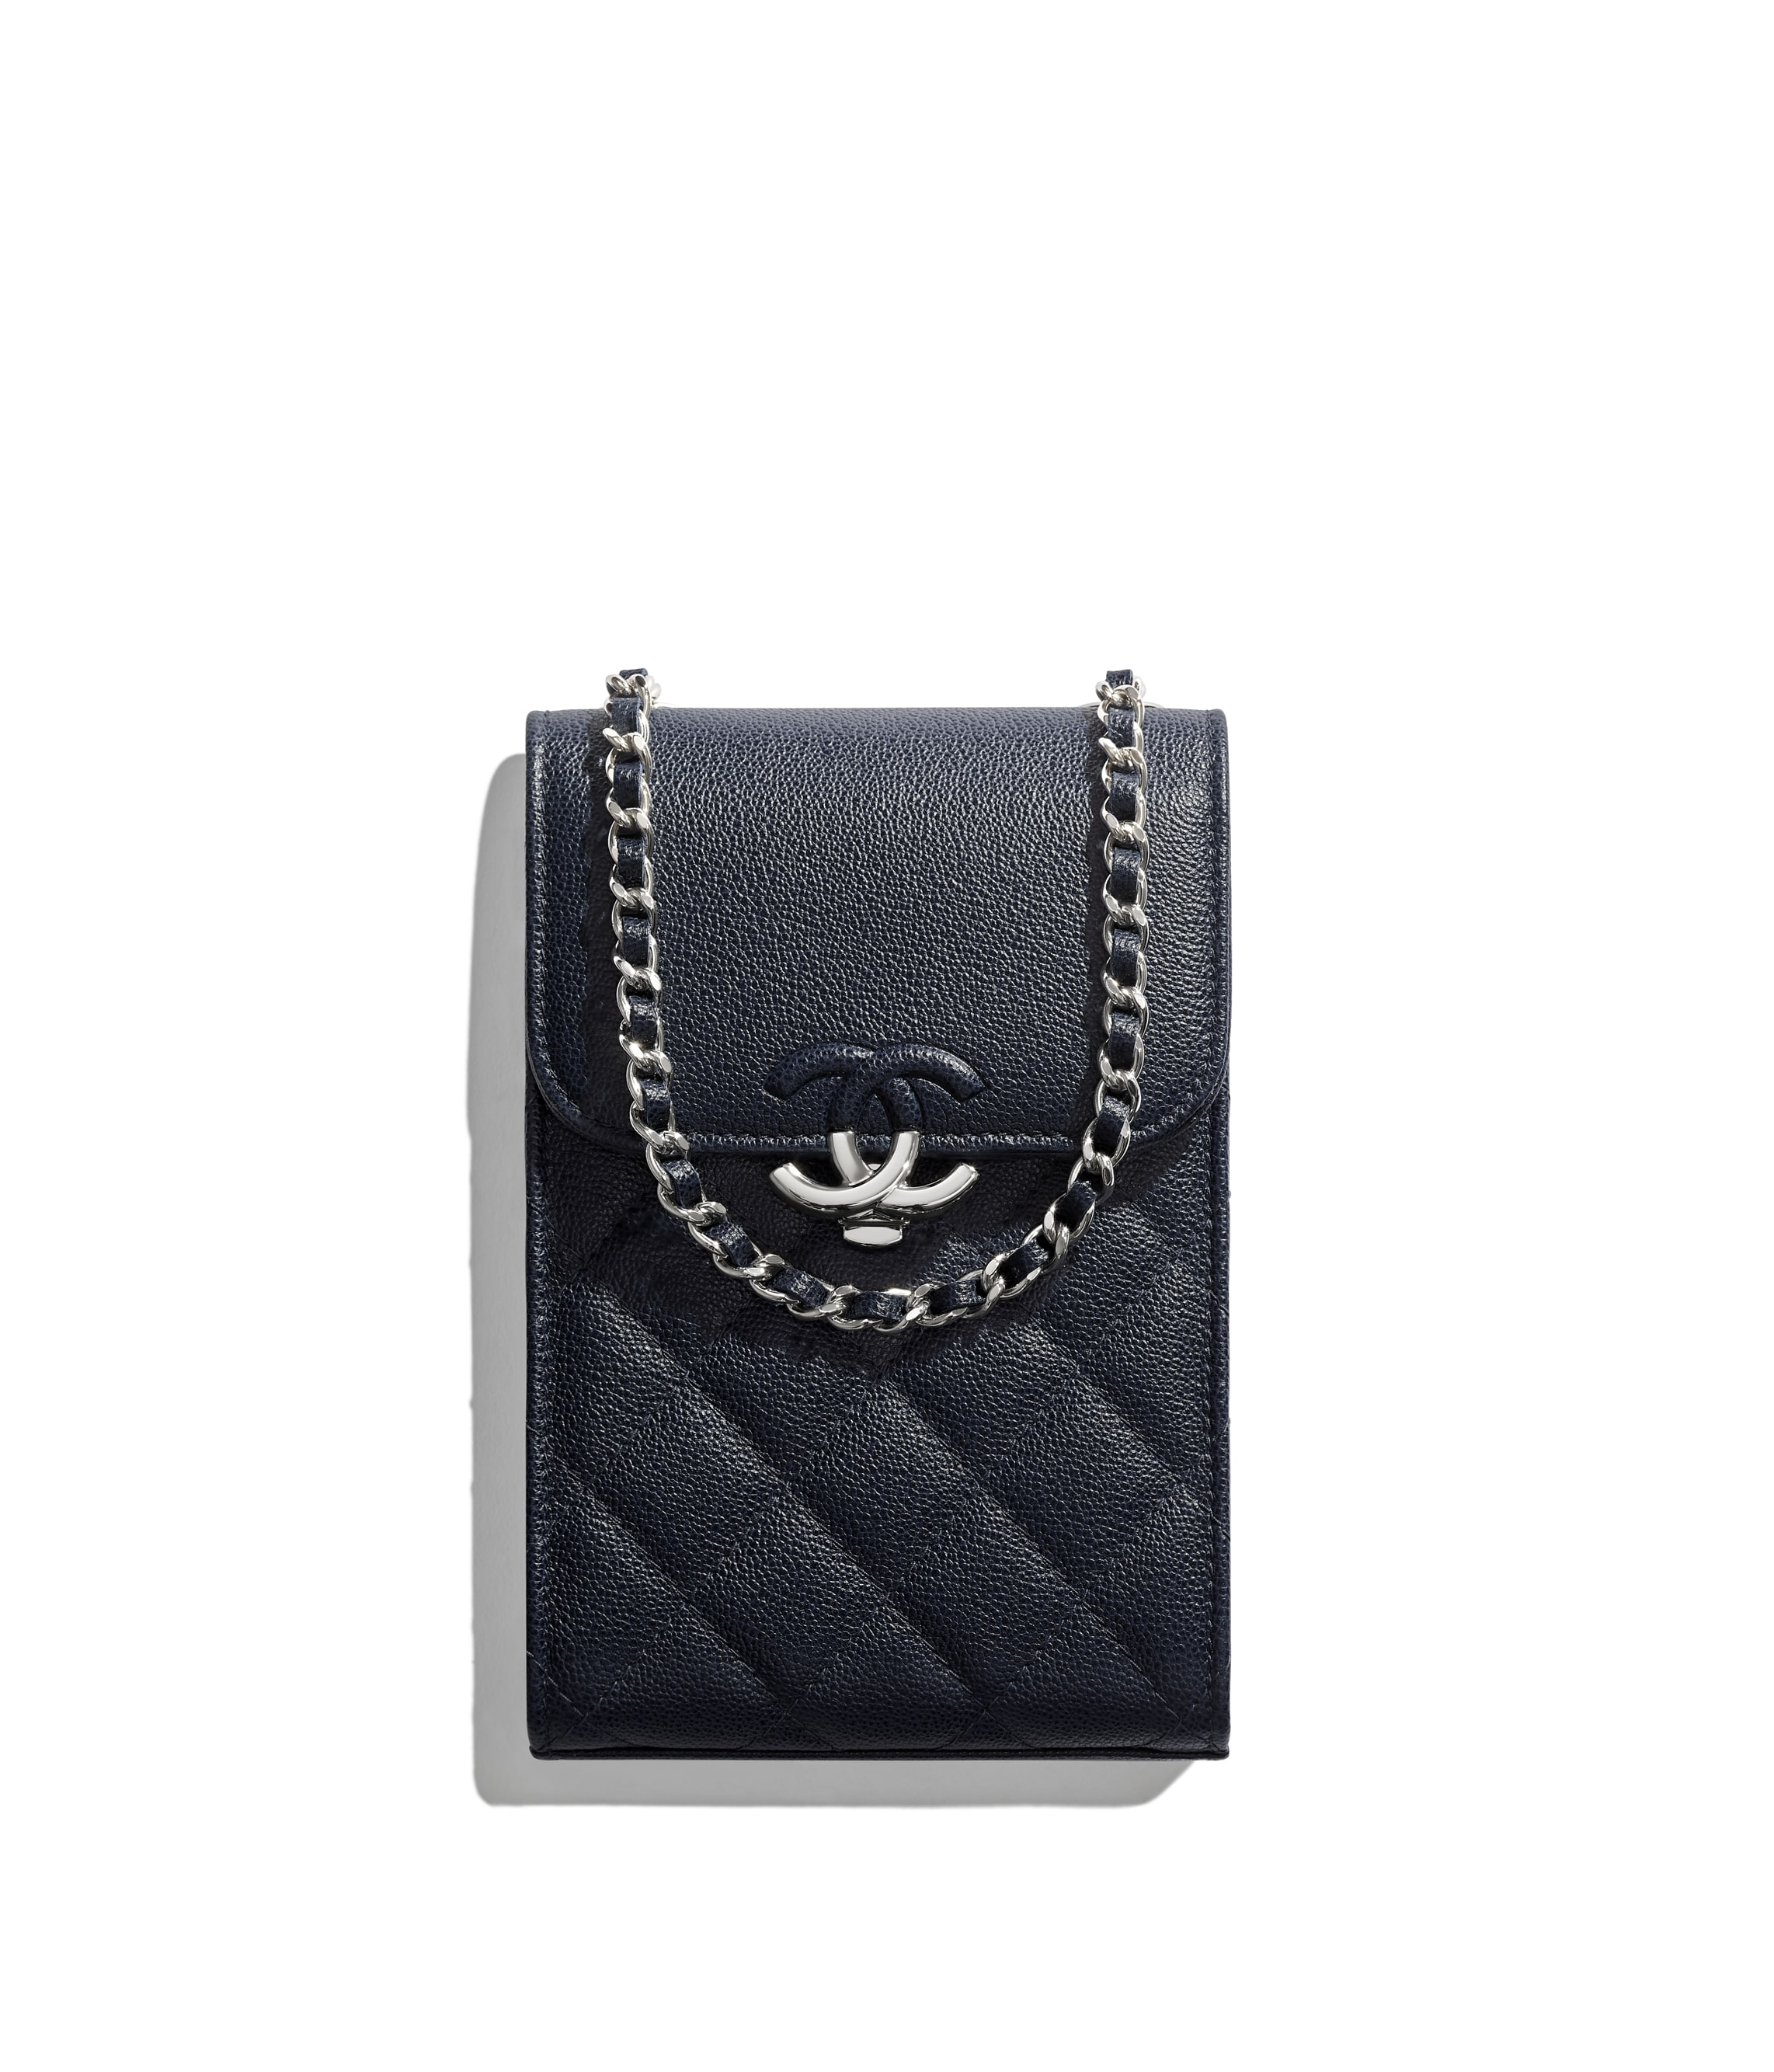 10e888135387 Chanel Caviar Quilted Wallet On Removable Chain Black - Best Photo ...